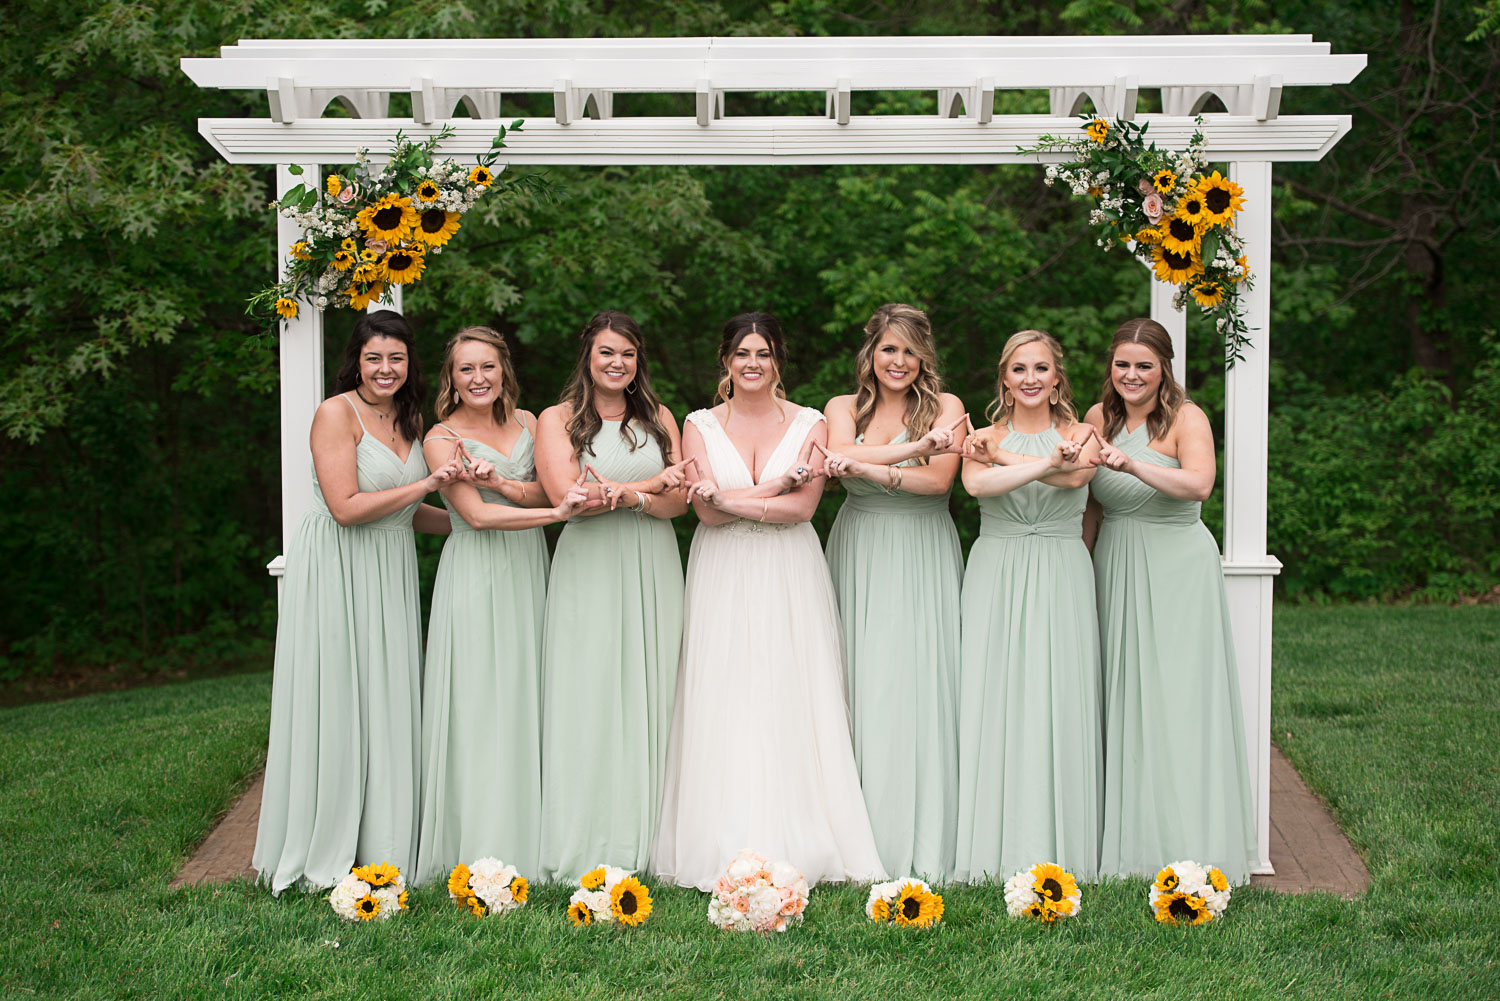 84 Tri Delta Sorority Bridesmaids.jpg